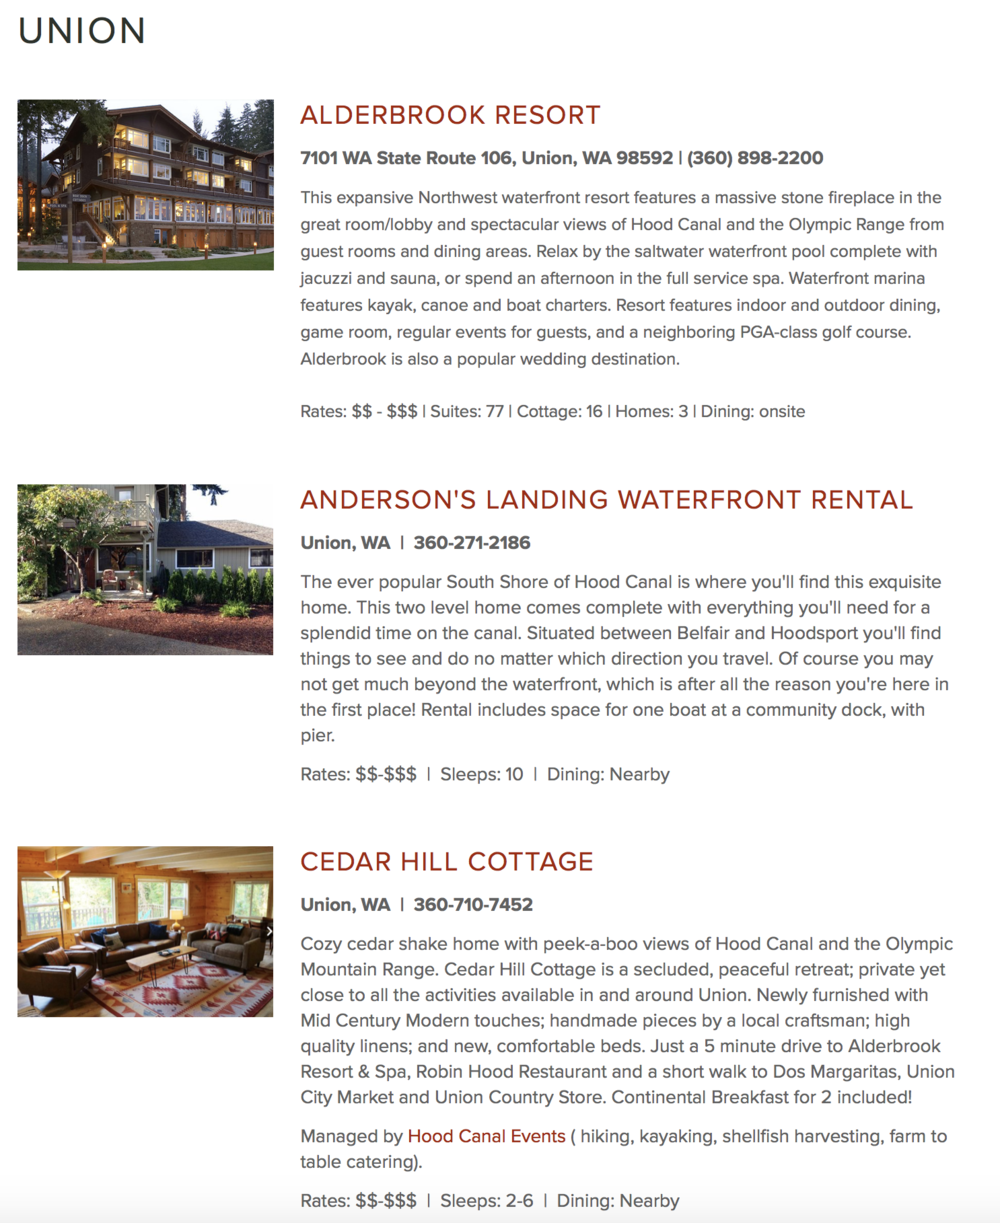 Click here to view a list of area lodging